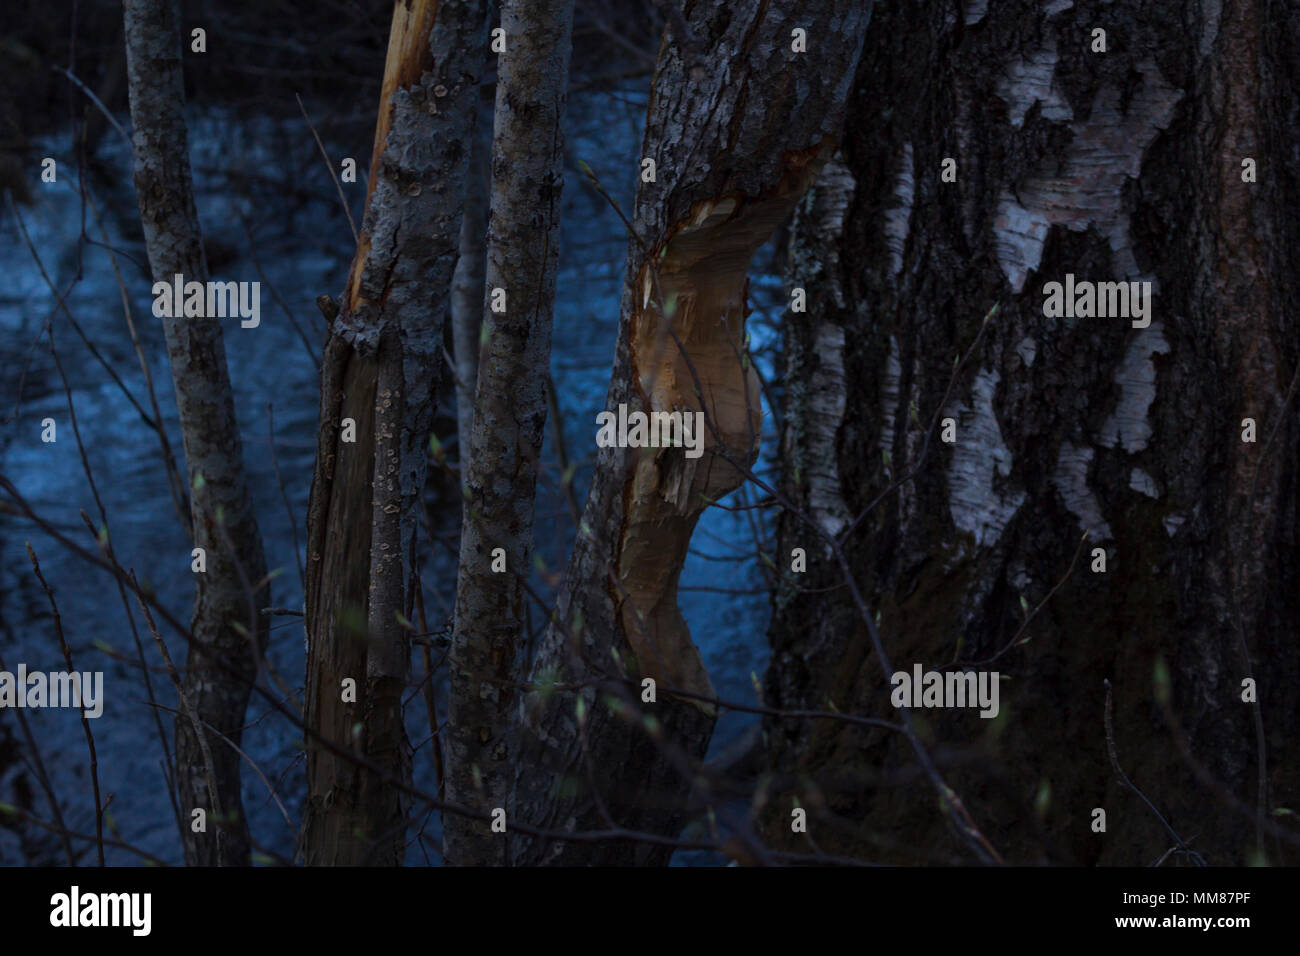 Tree eaten by beavers, next to a river in northern Sweden. River visible in the background, birch tree next to the eaten tree. - Stock Image